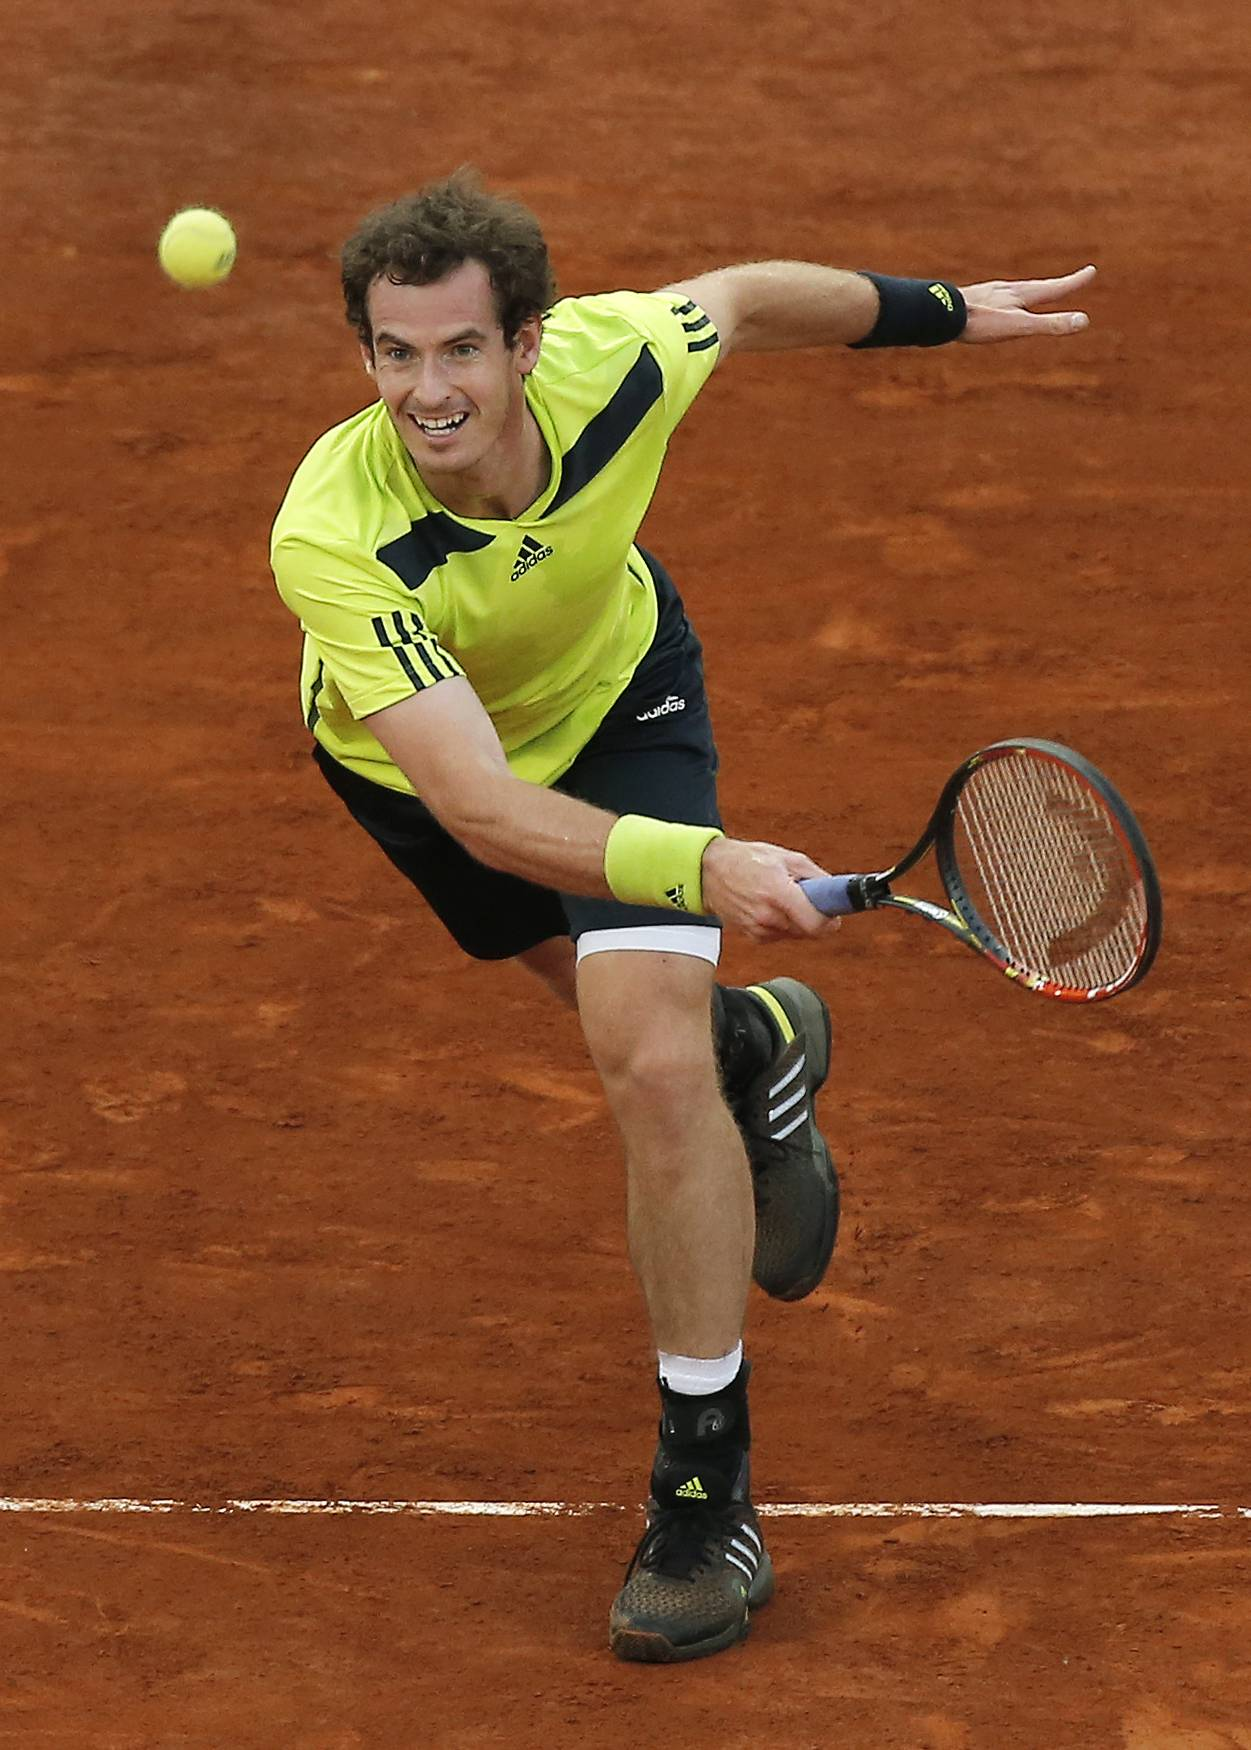 Andy Murray returns the ball during a Madrid Open tennis tournament match against Nicolas Almagro from Spain, in Madrid, Spain, Wednesday, May 7, 2014.